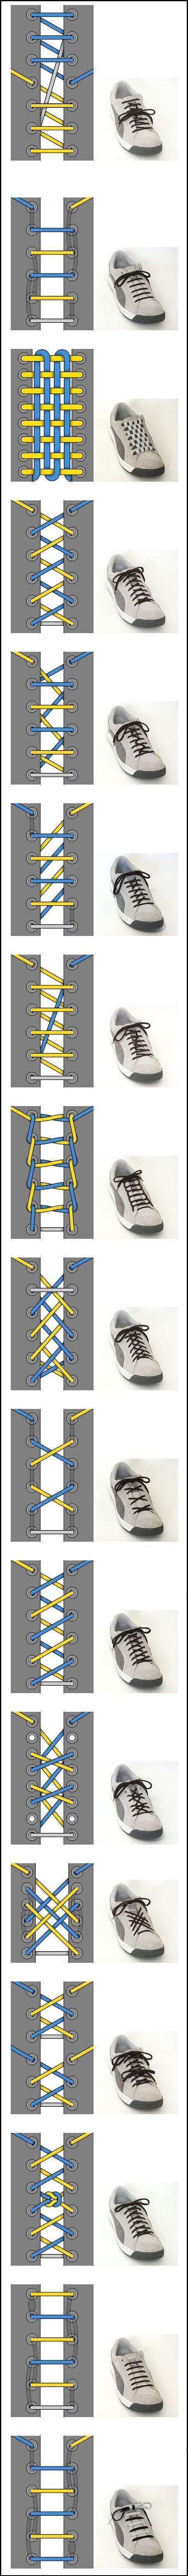 Who knew there were a zillion different ways to lace up shoes?